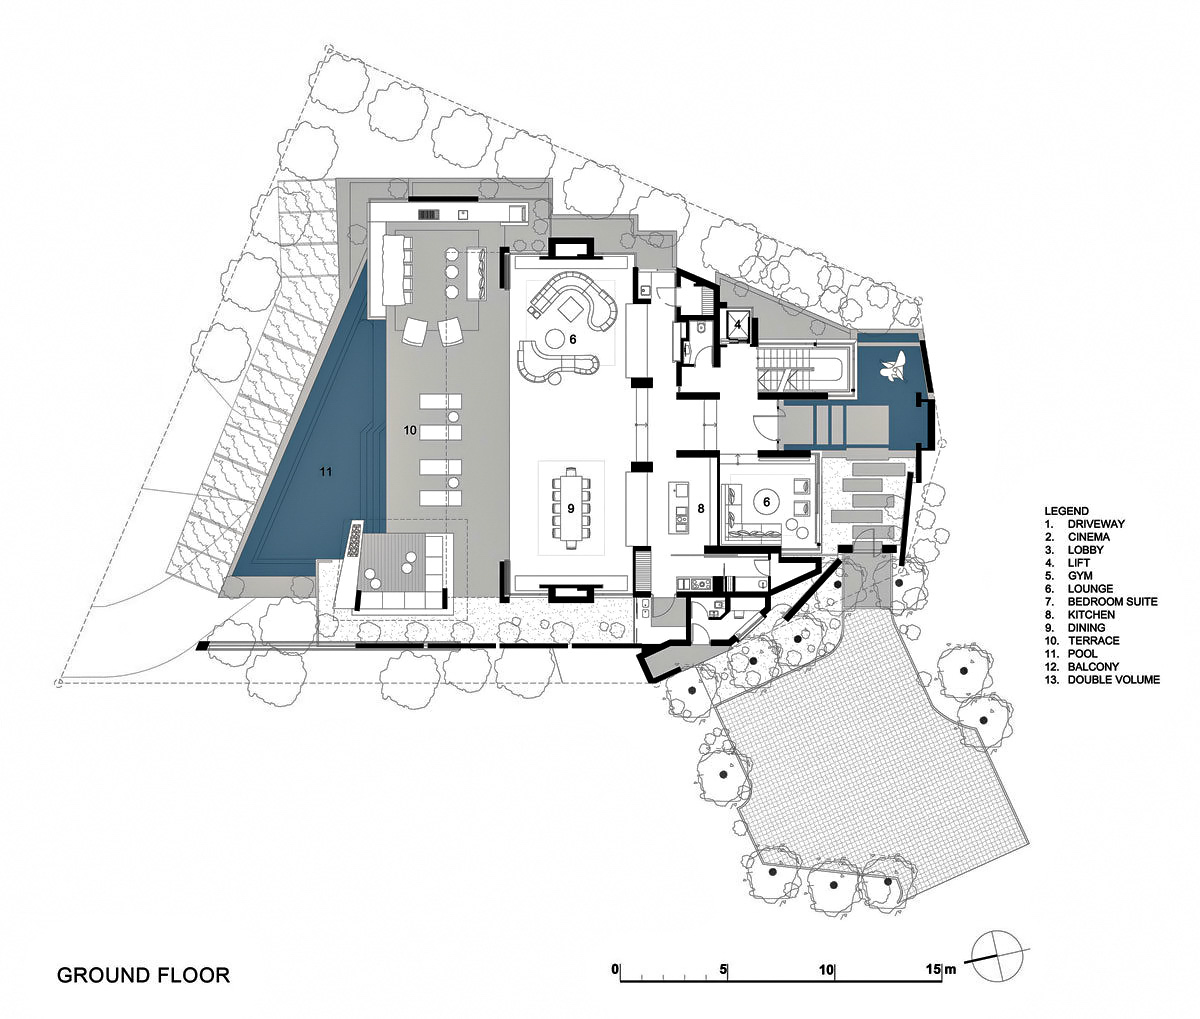 Ground Floor Plan - Head Road 1843 - Fresnaye, Cape Town, Western Cape, South Africa